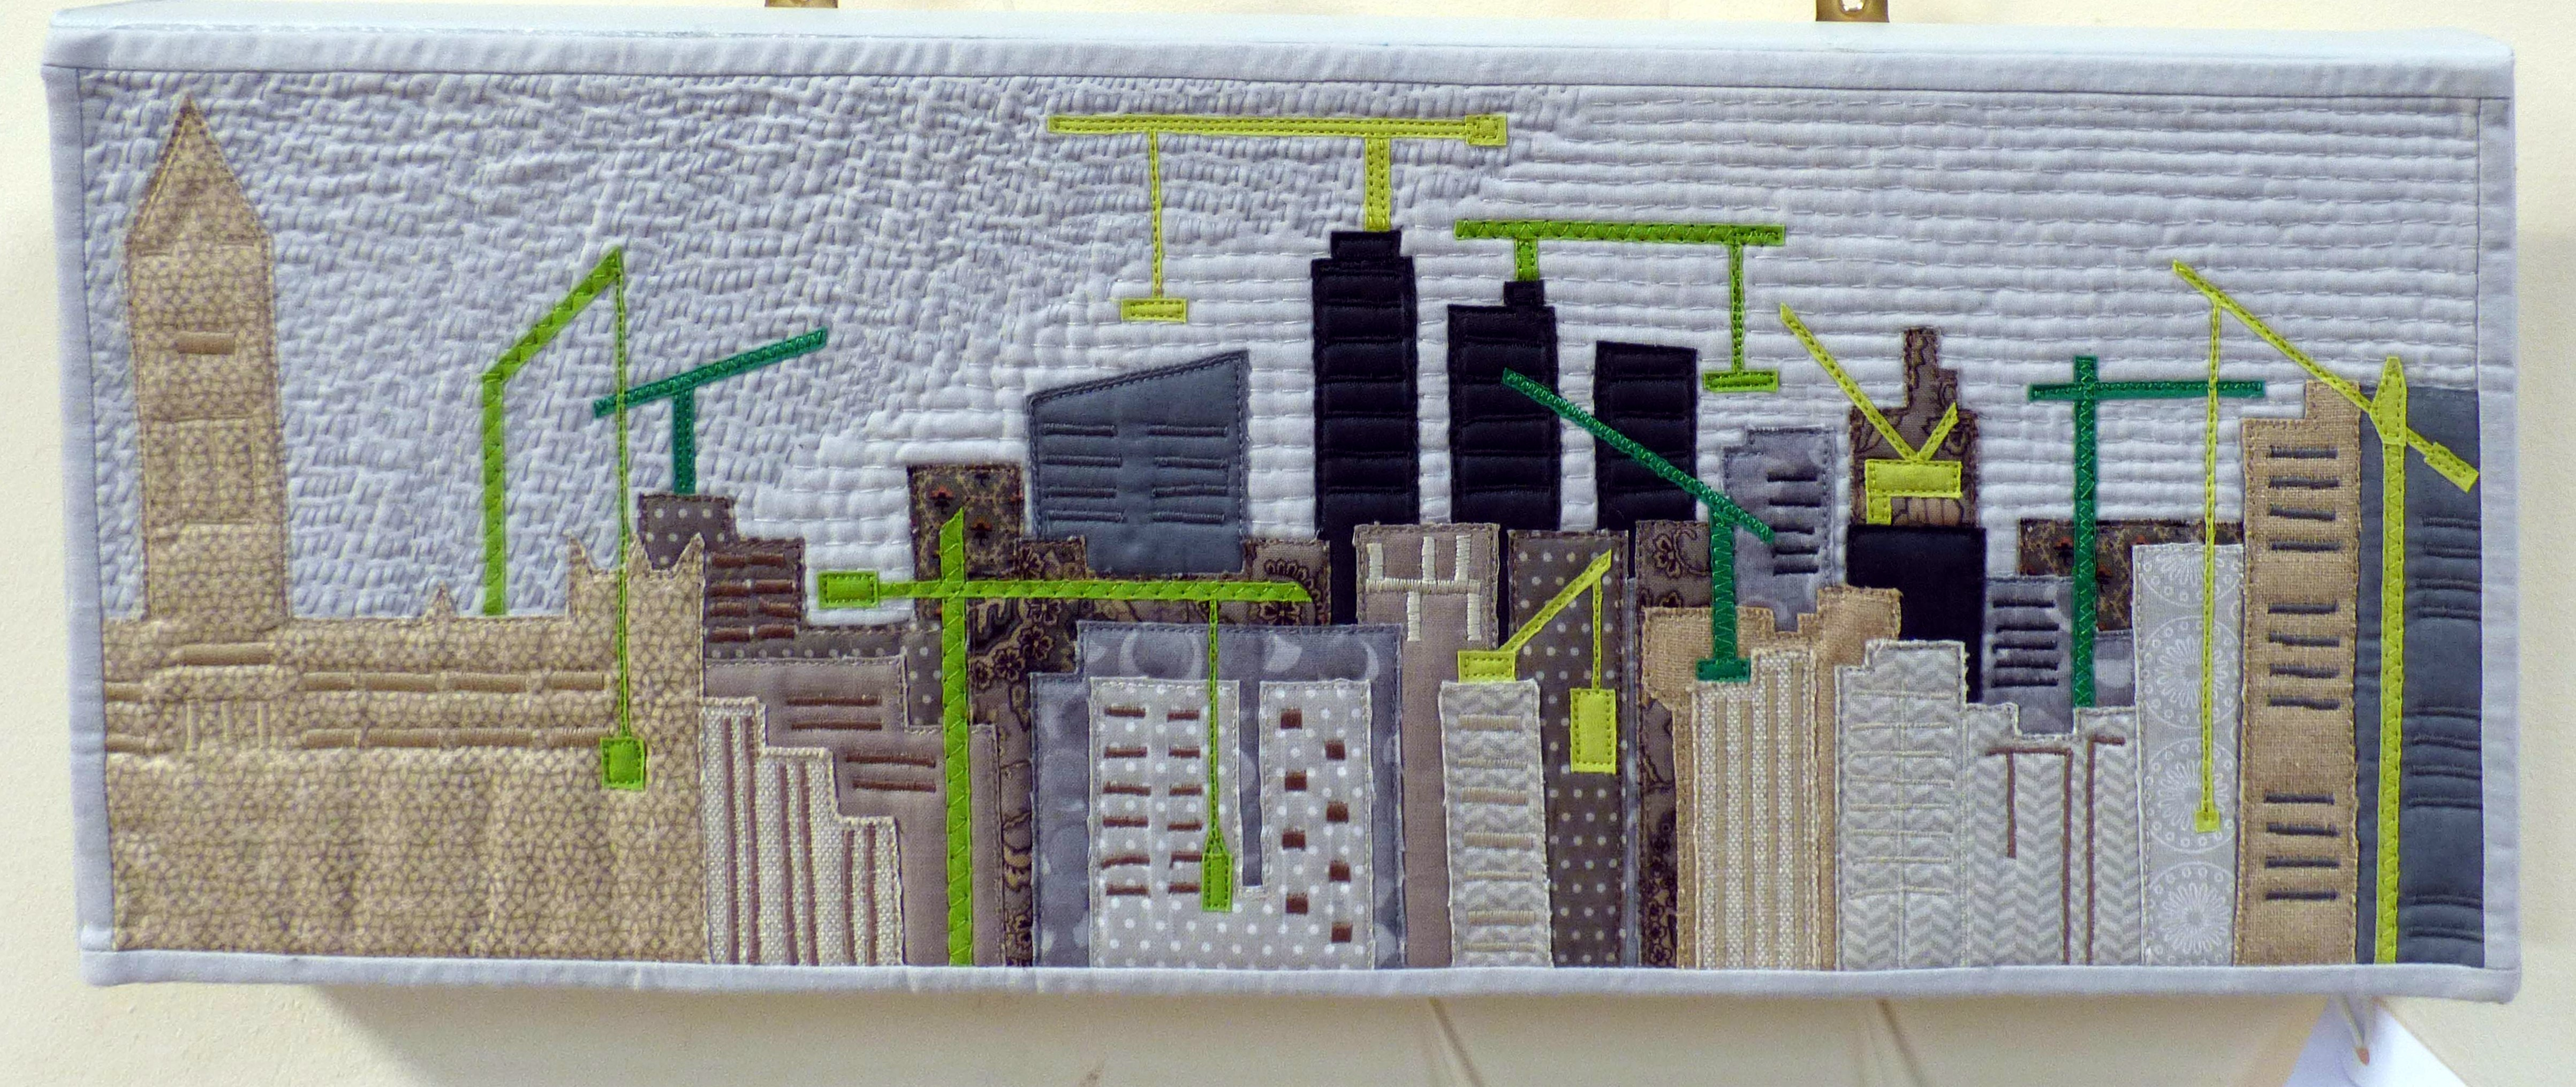 STORM RISE ON THE NORTHERN SKYLINE by Jane Holmes, Natural Progression Textile Group, Jan 2020